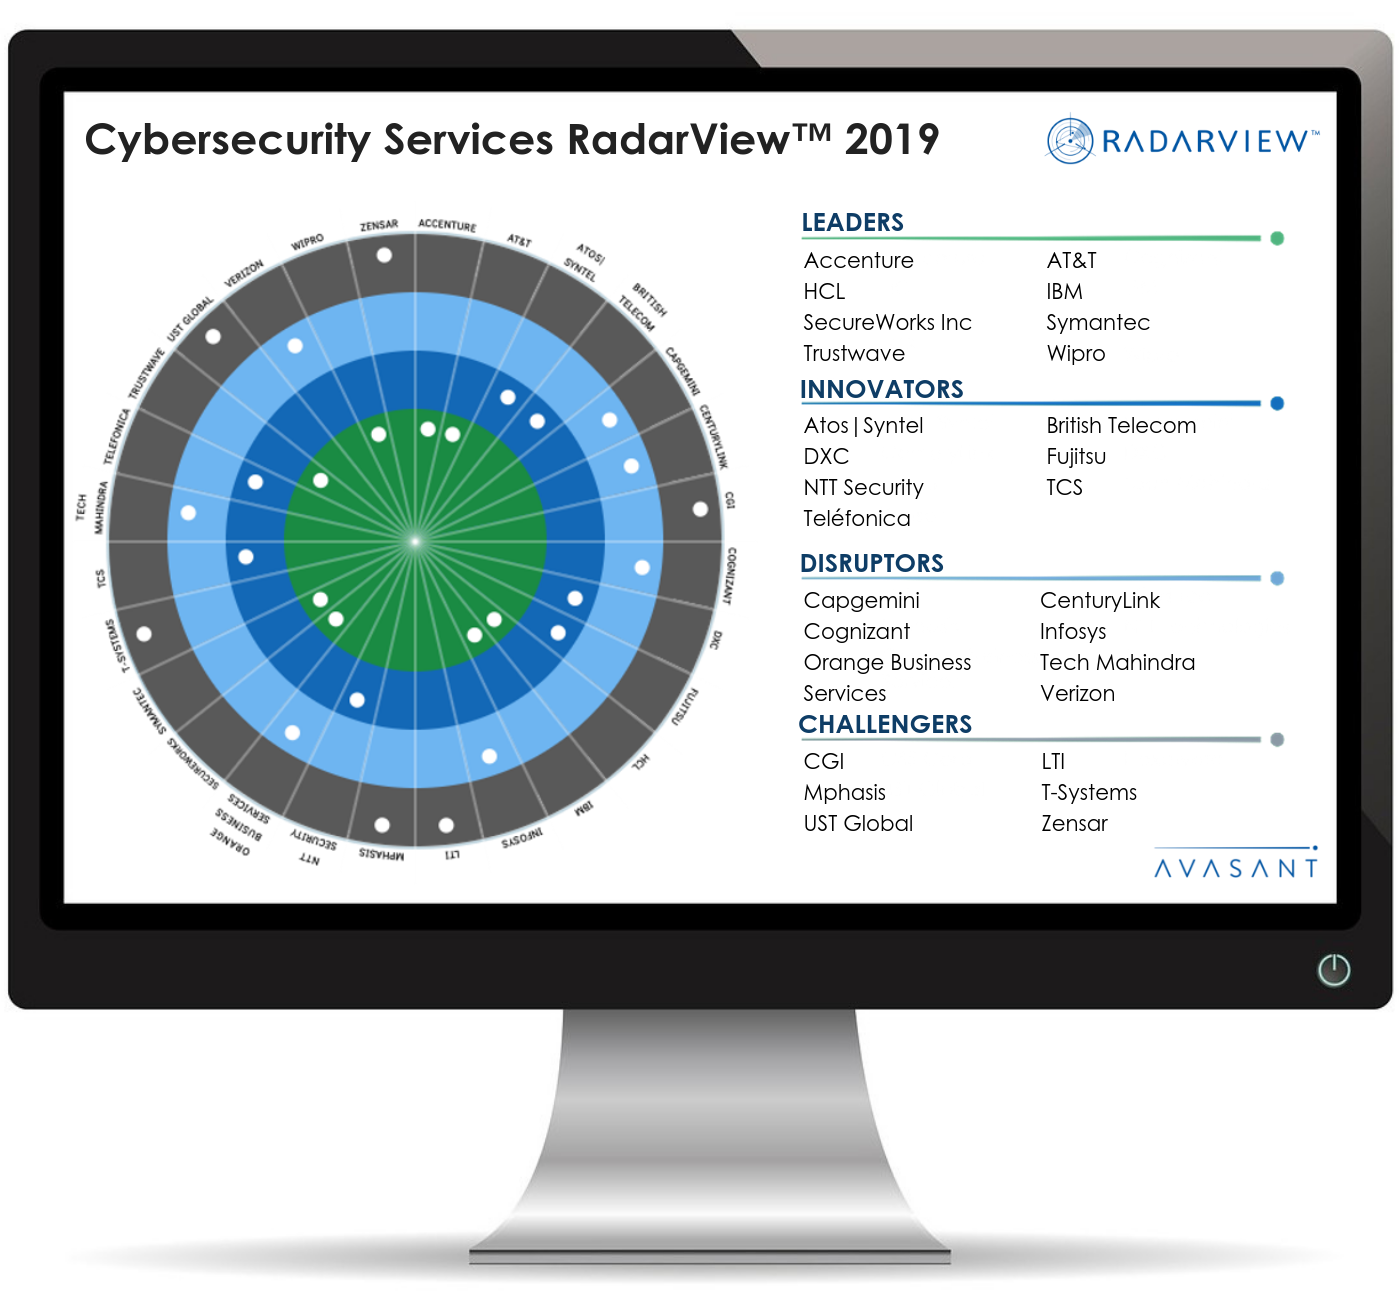 Copy of Copy of Ai and Applied Analytics full 2 - Cybersecurity Services 2019 British Telecom RadarView™ Profile